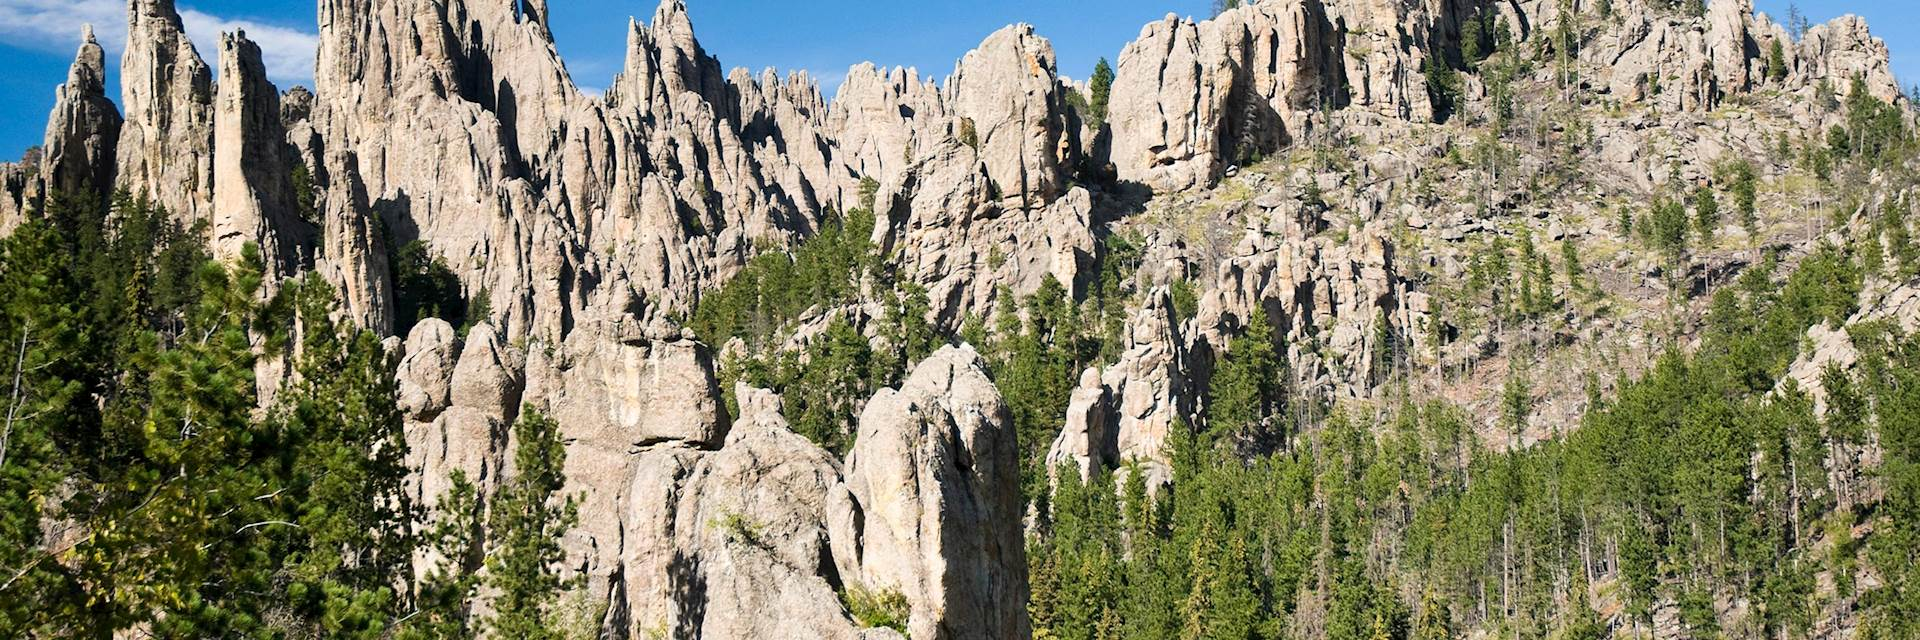 Custer State Park, the USA